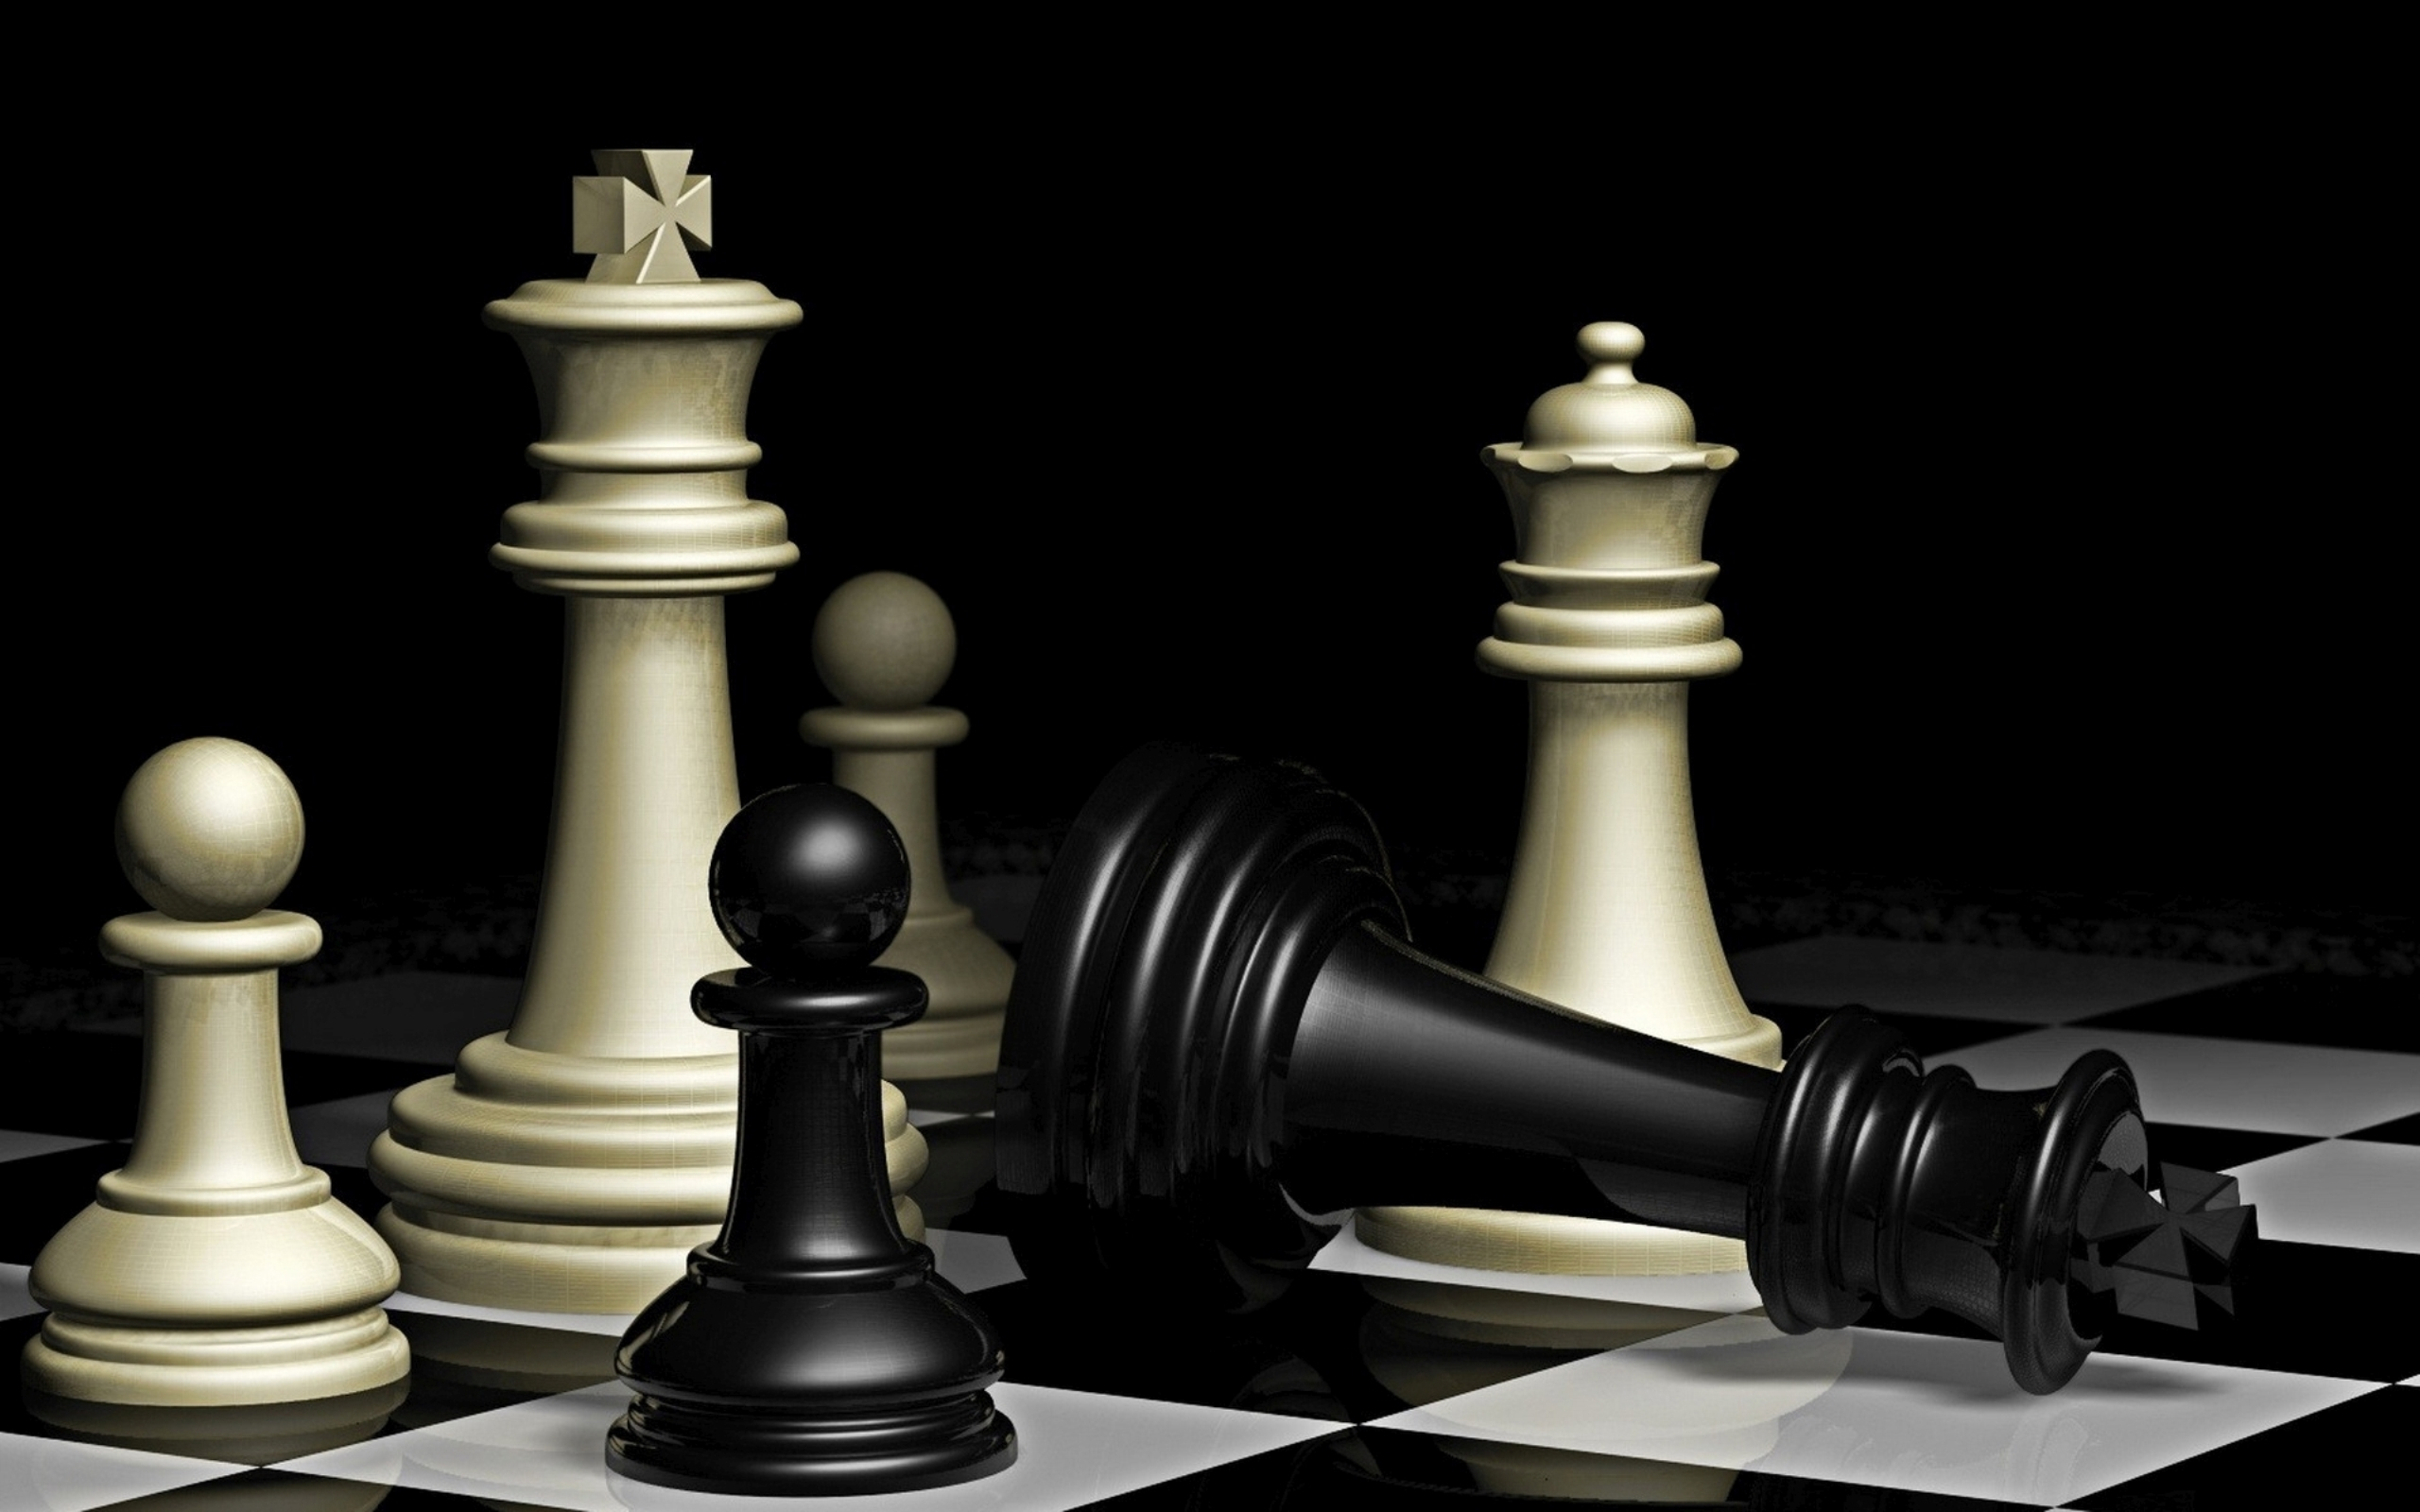 Chess wallpaper 3d 30 page 2 of 3 dzbc pages voltagebd Gallery